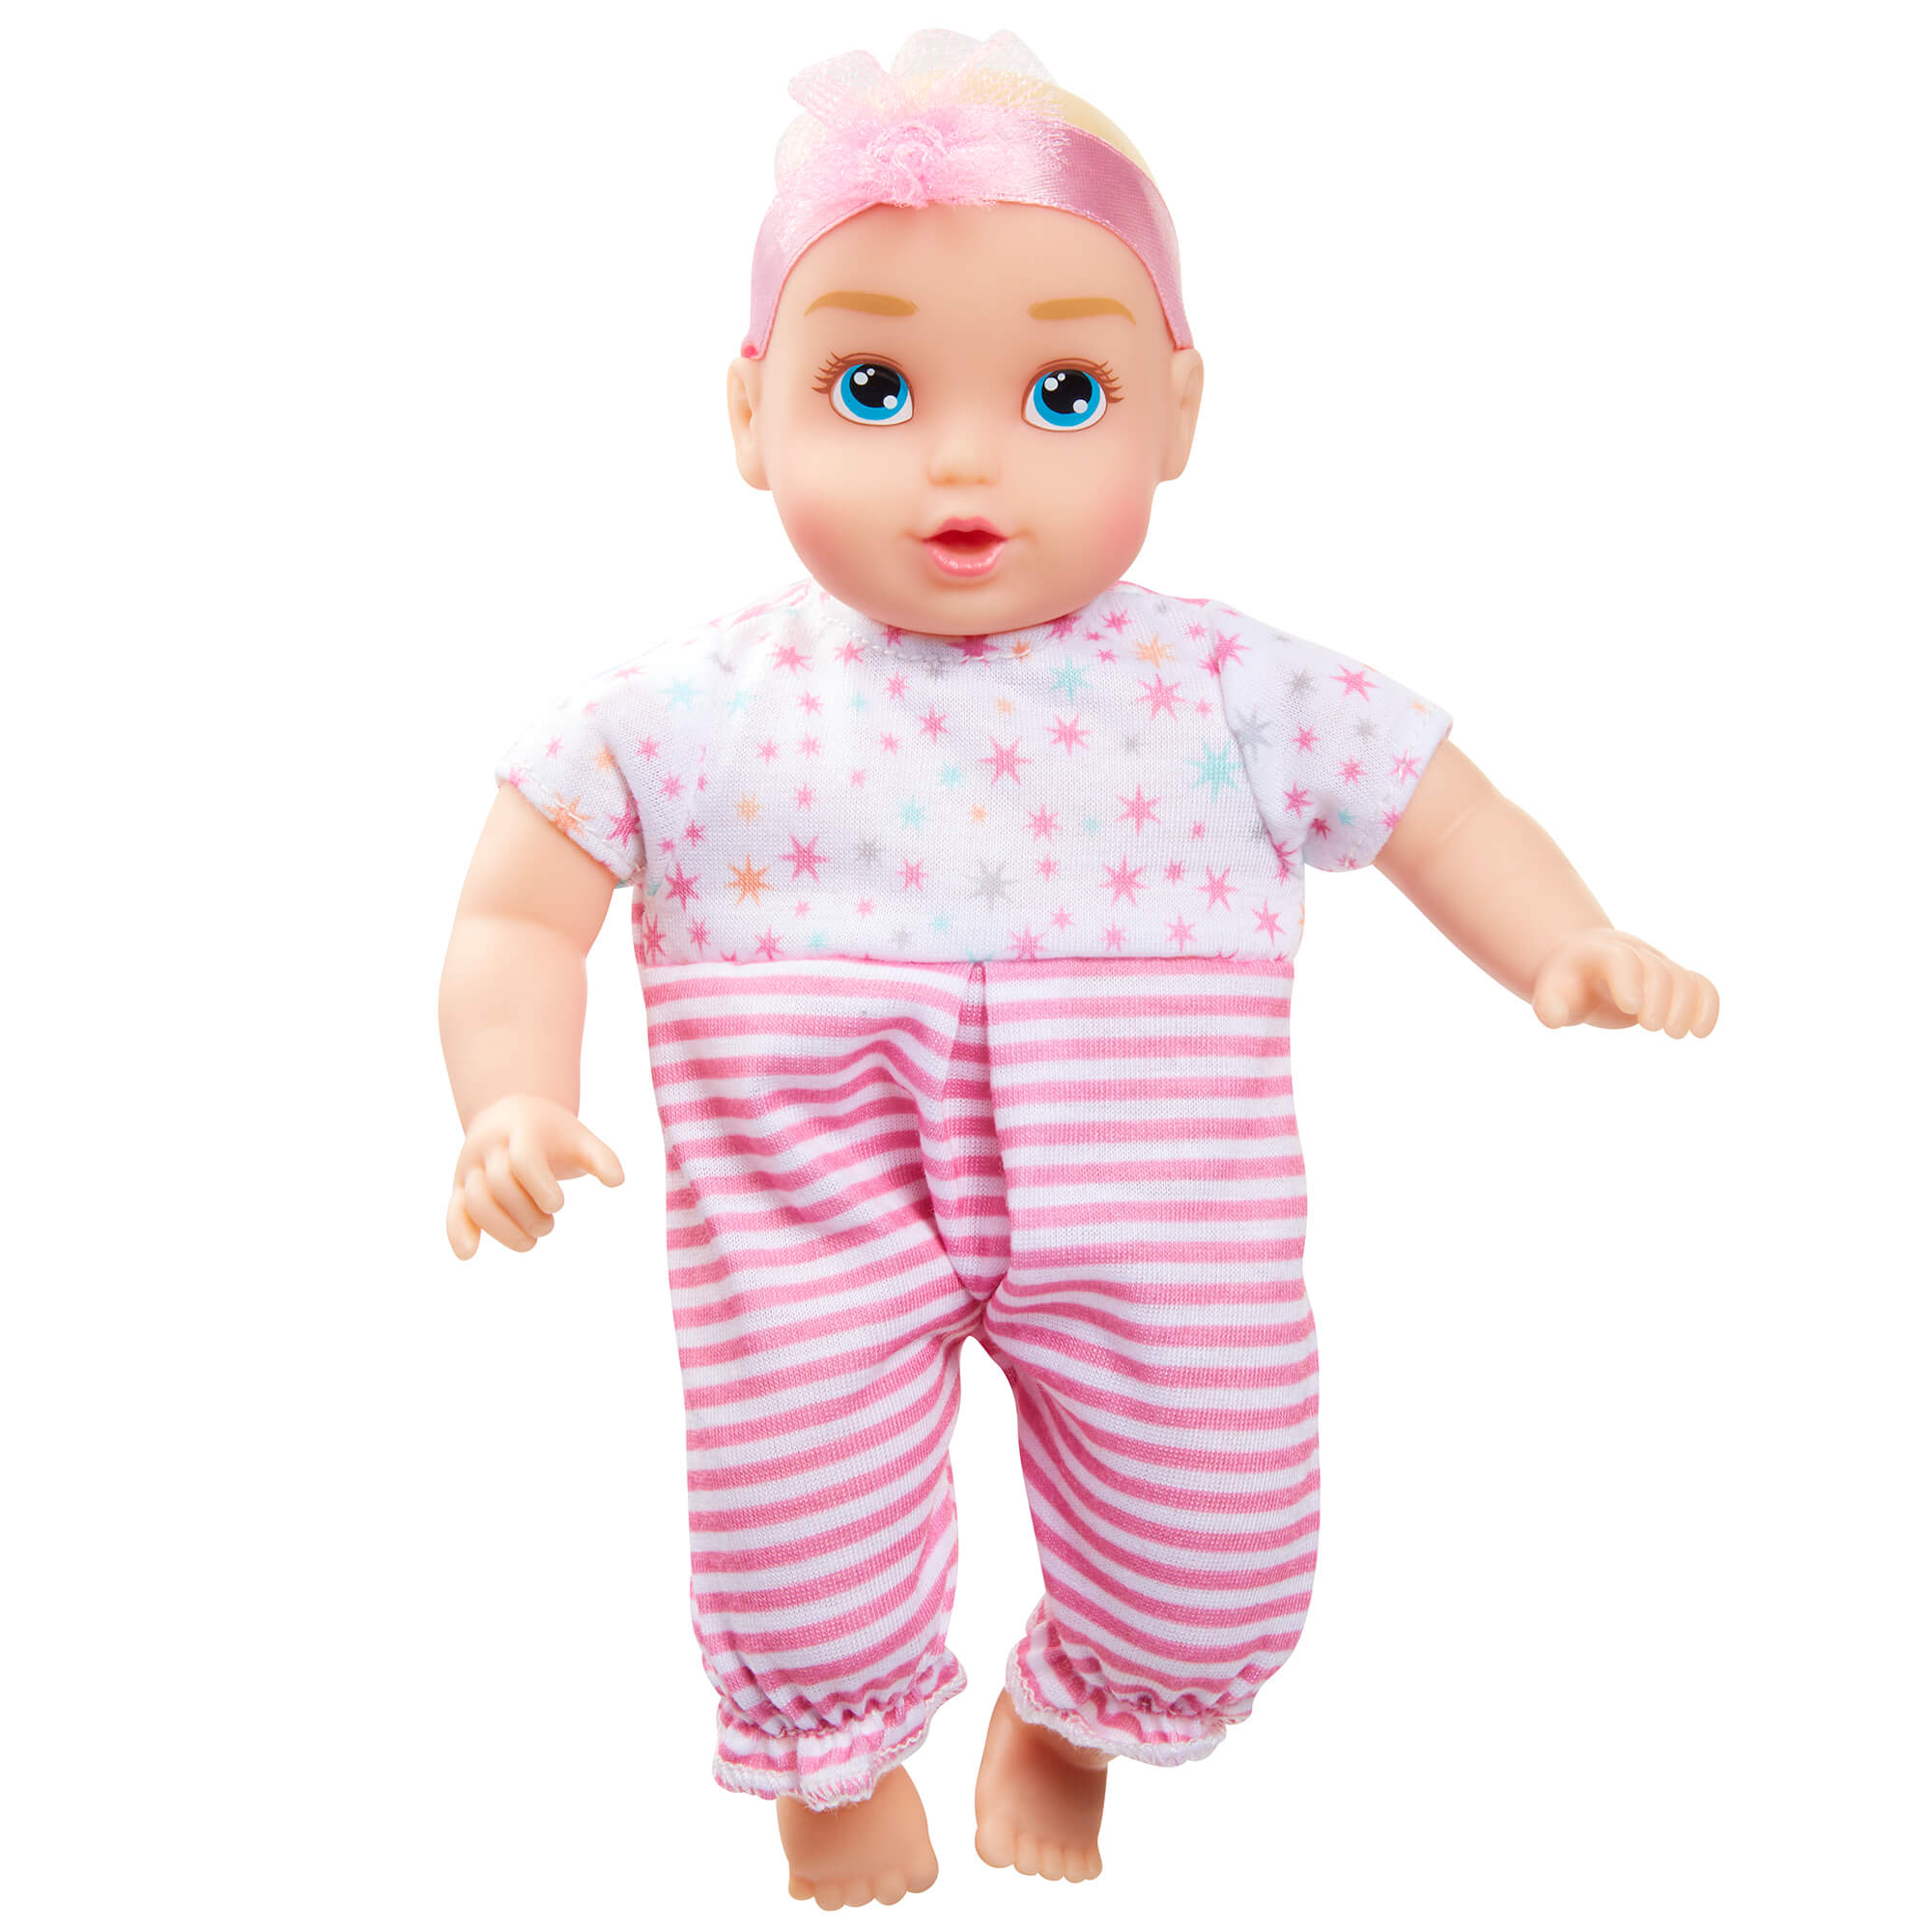 Perfectly Cute Baby 8 inch My Lil' Baby Girl Doll (Blonde - Blue Eyes)